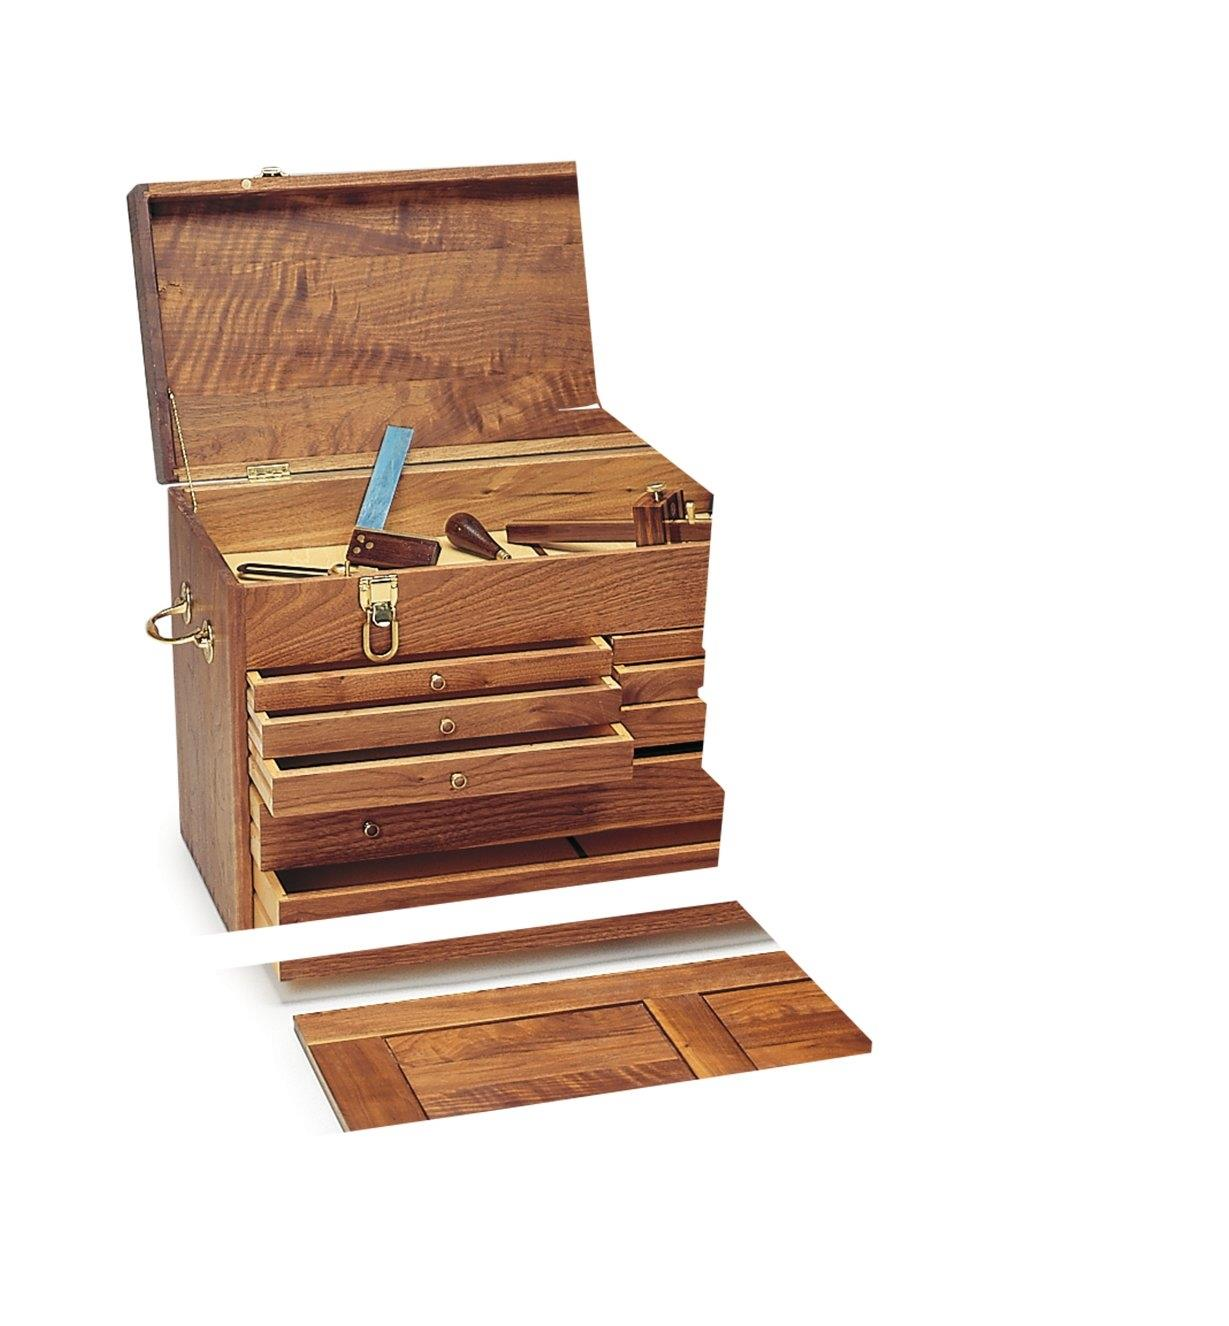 05L1601 - Tool Chest Plan